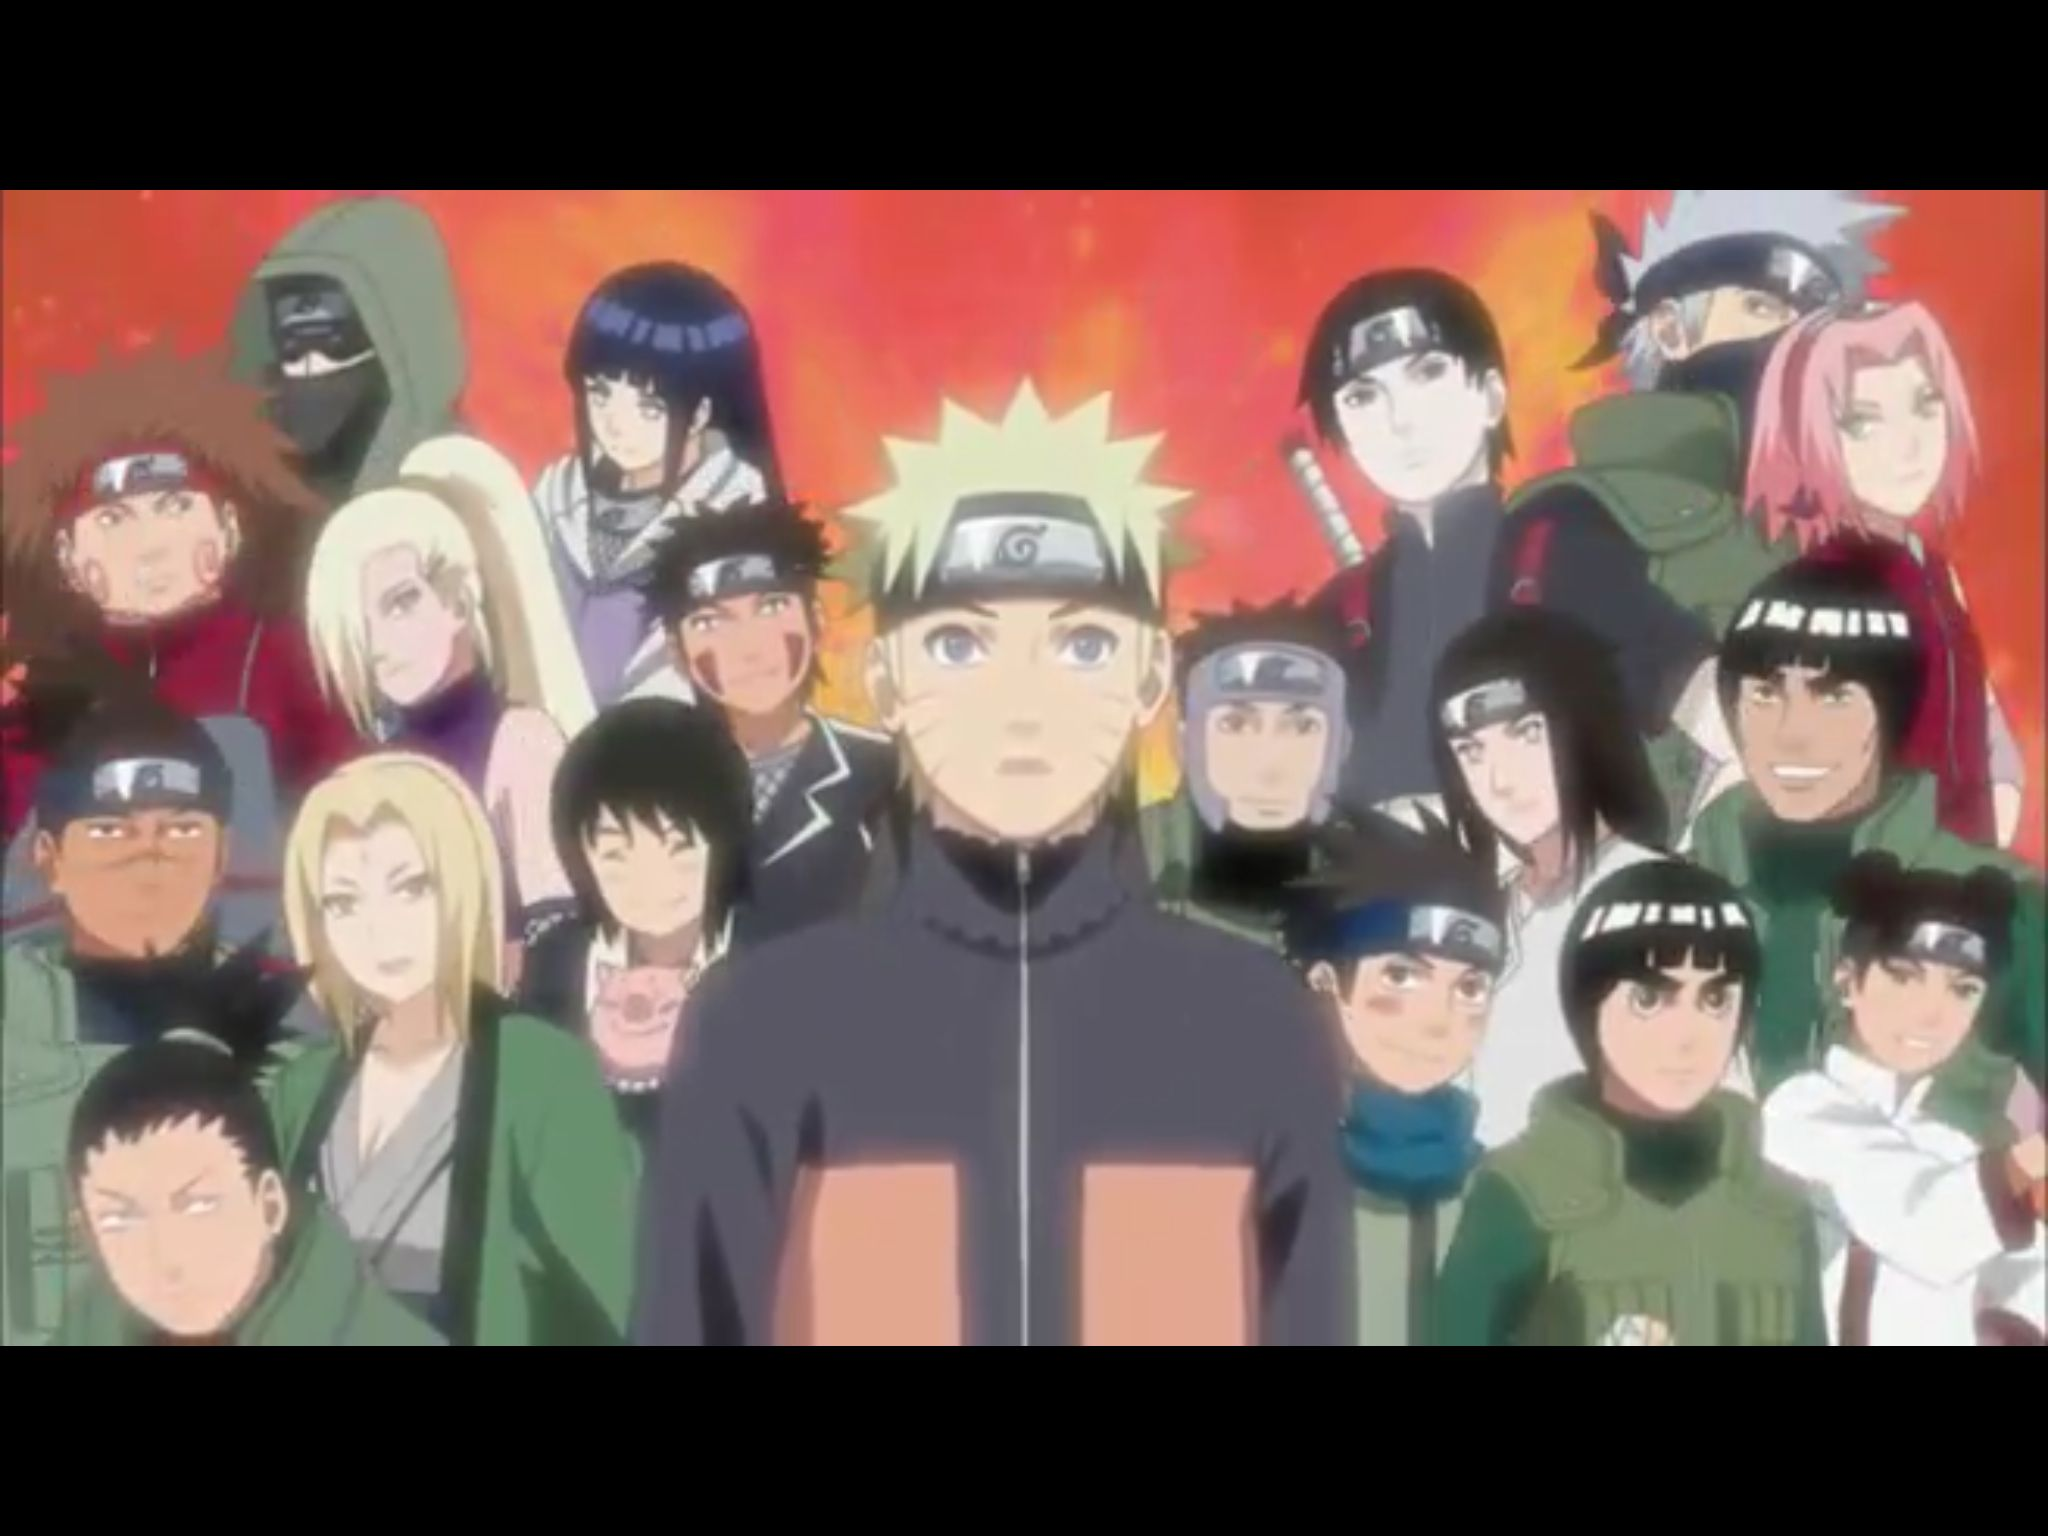 I love Naruto and the many characters of the show